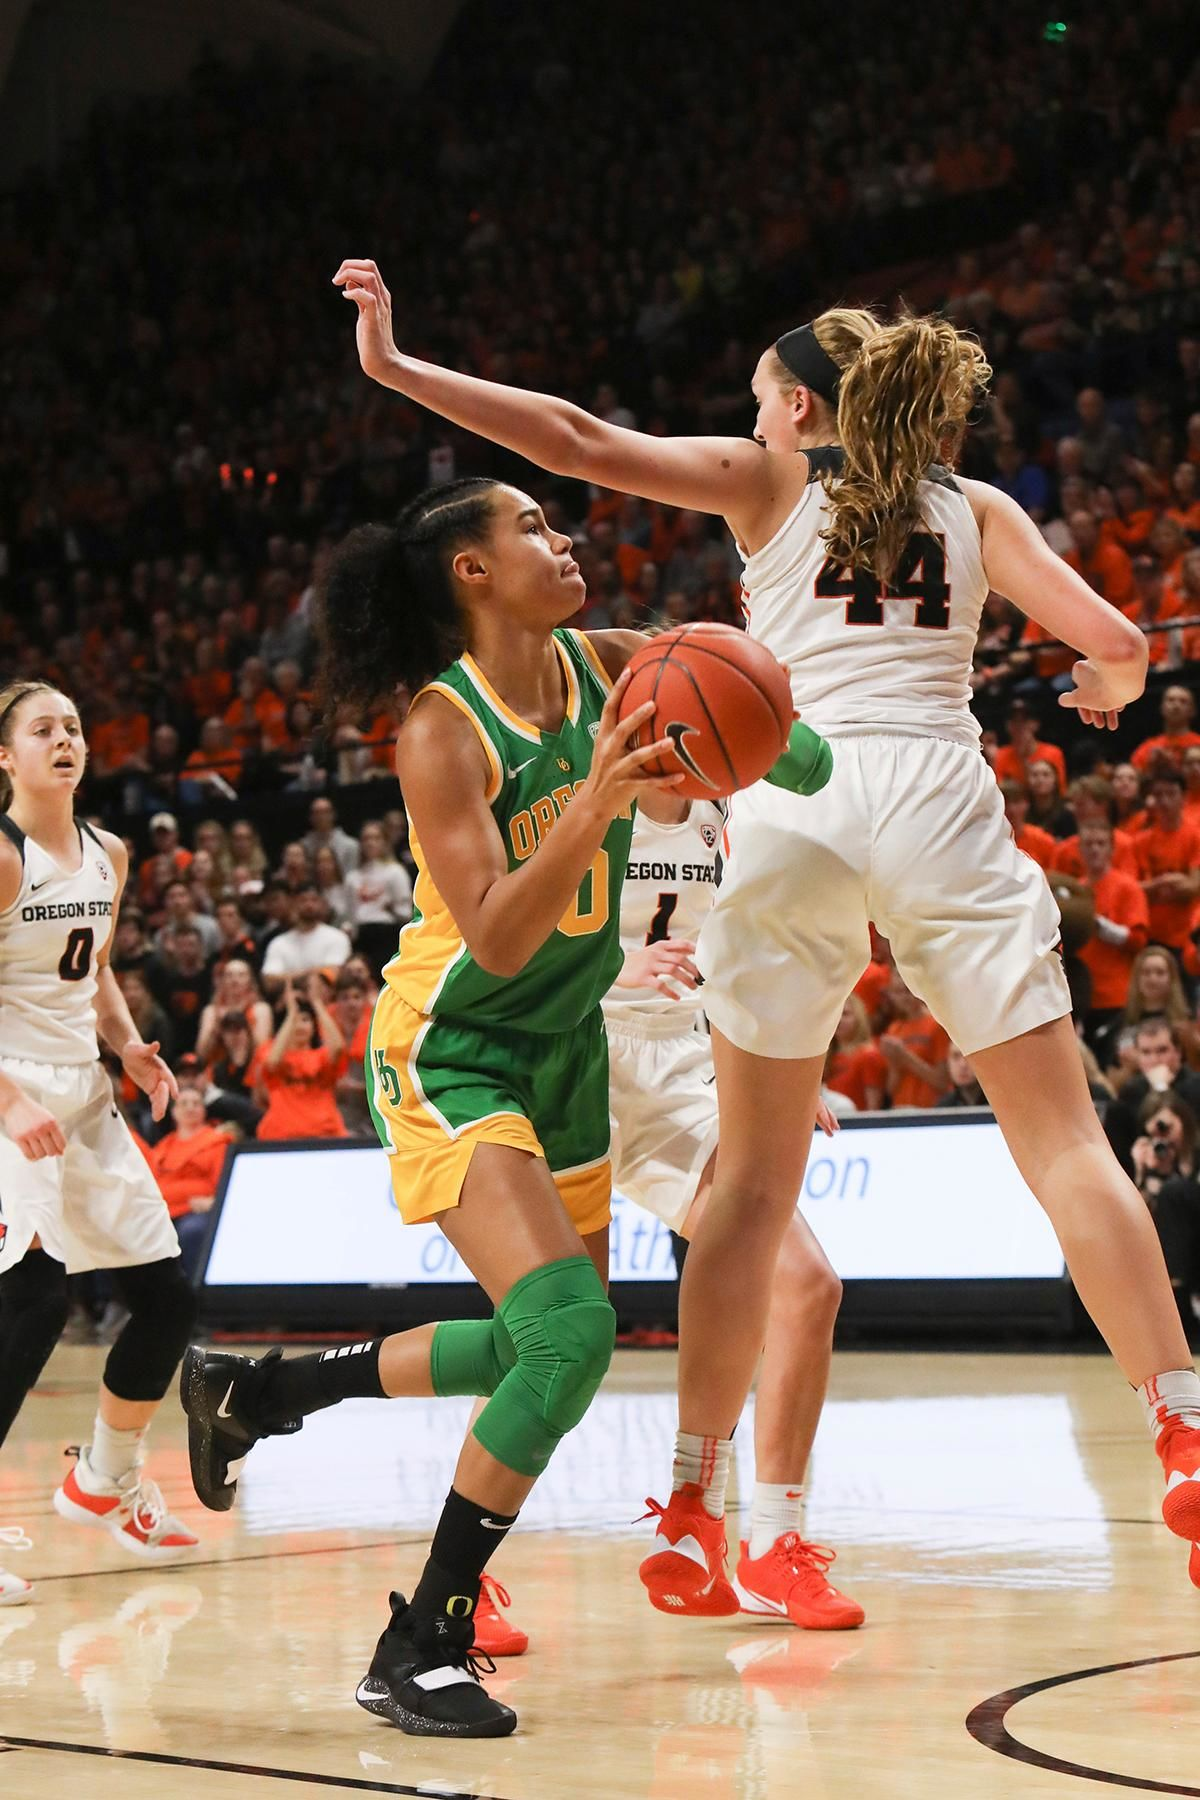 Oregon's Satou Sabally (0) darts behind Oregon State's Taylor Jones (44) to shoot to the basket during the first half of an NCAA college basketball game in Corvallis, Ore., Sunday, Jan. 26, 2020. (AP Photo/Amanda Loman)